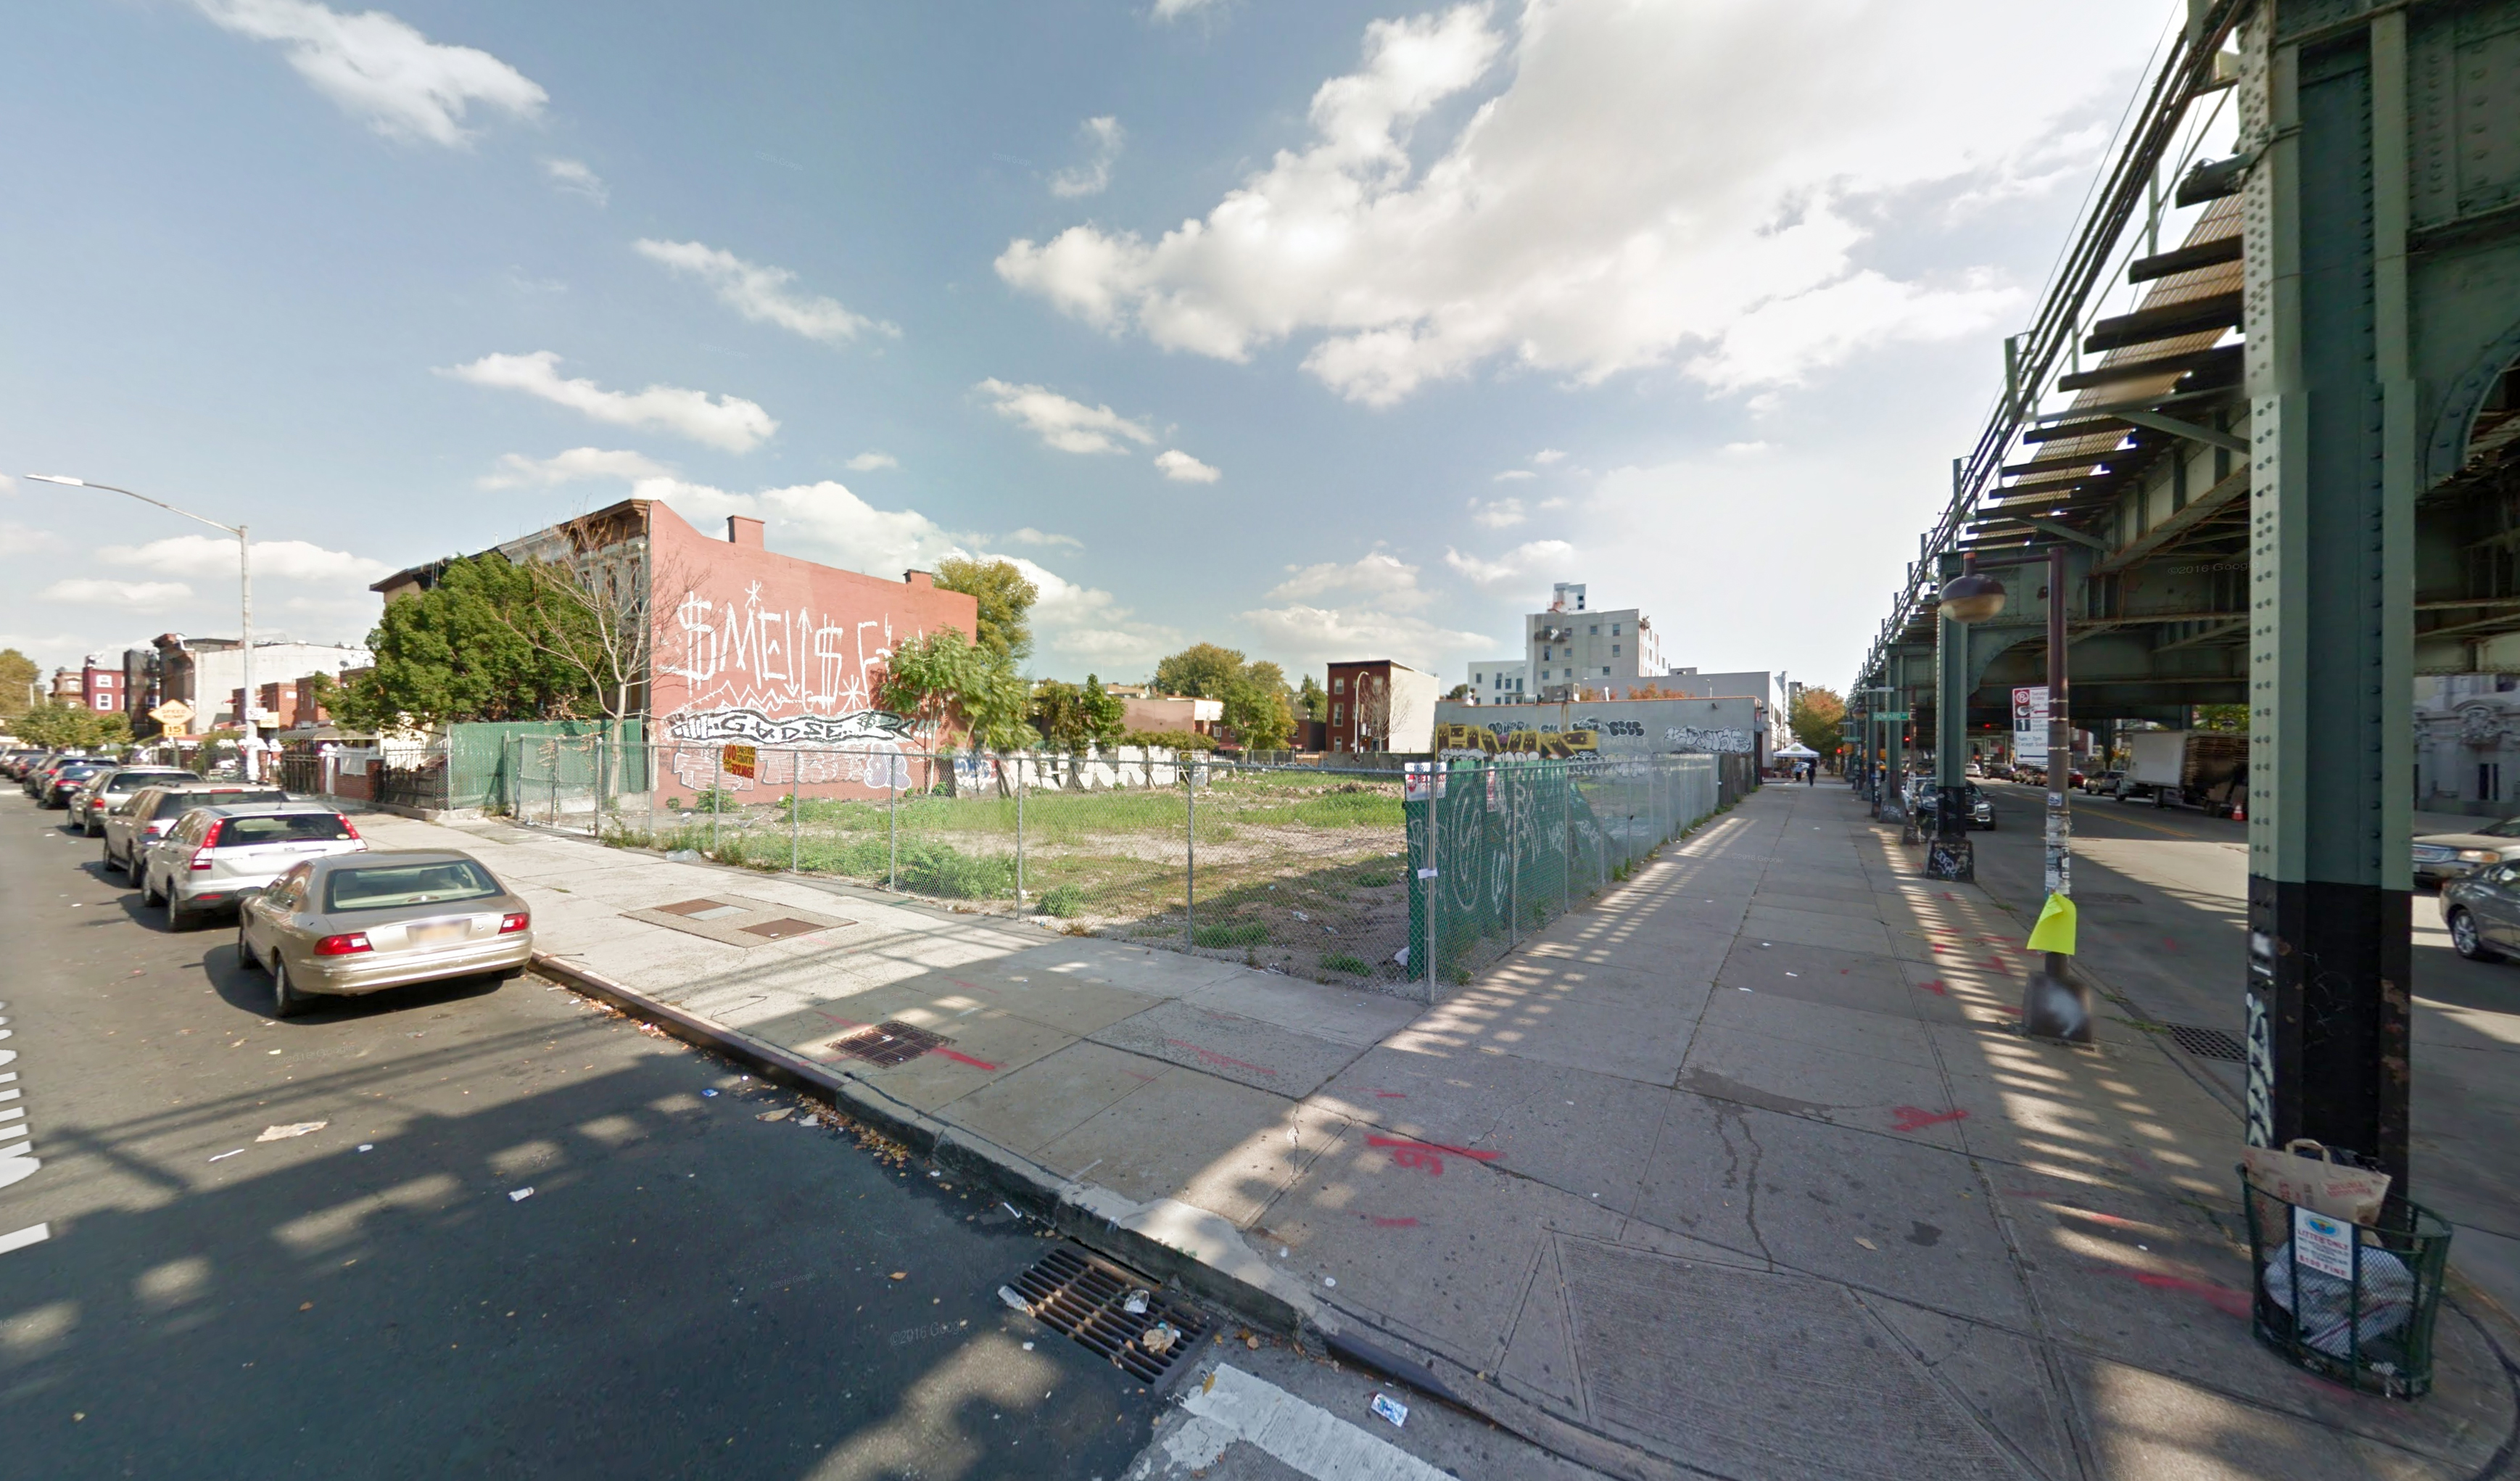 1389 Broadway, via Google Maps